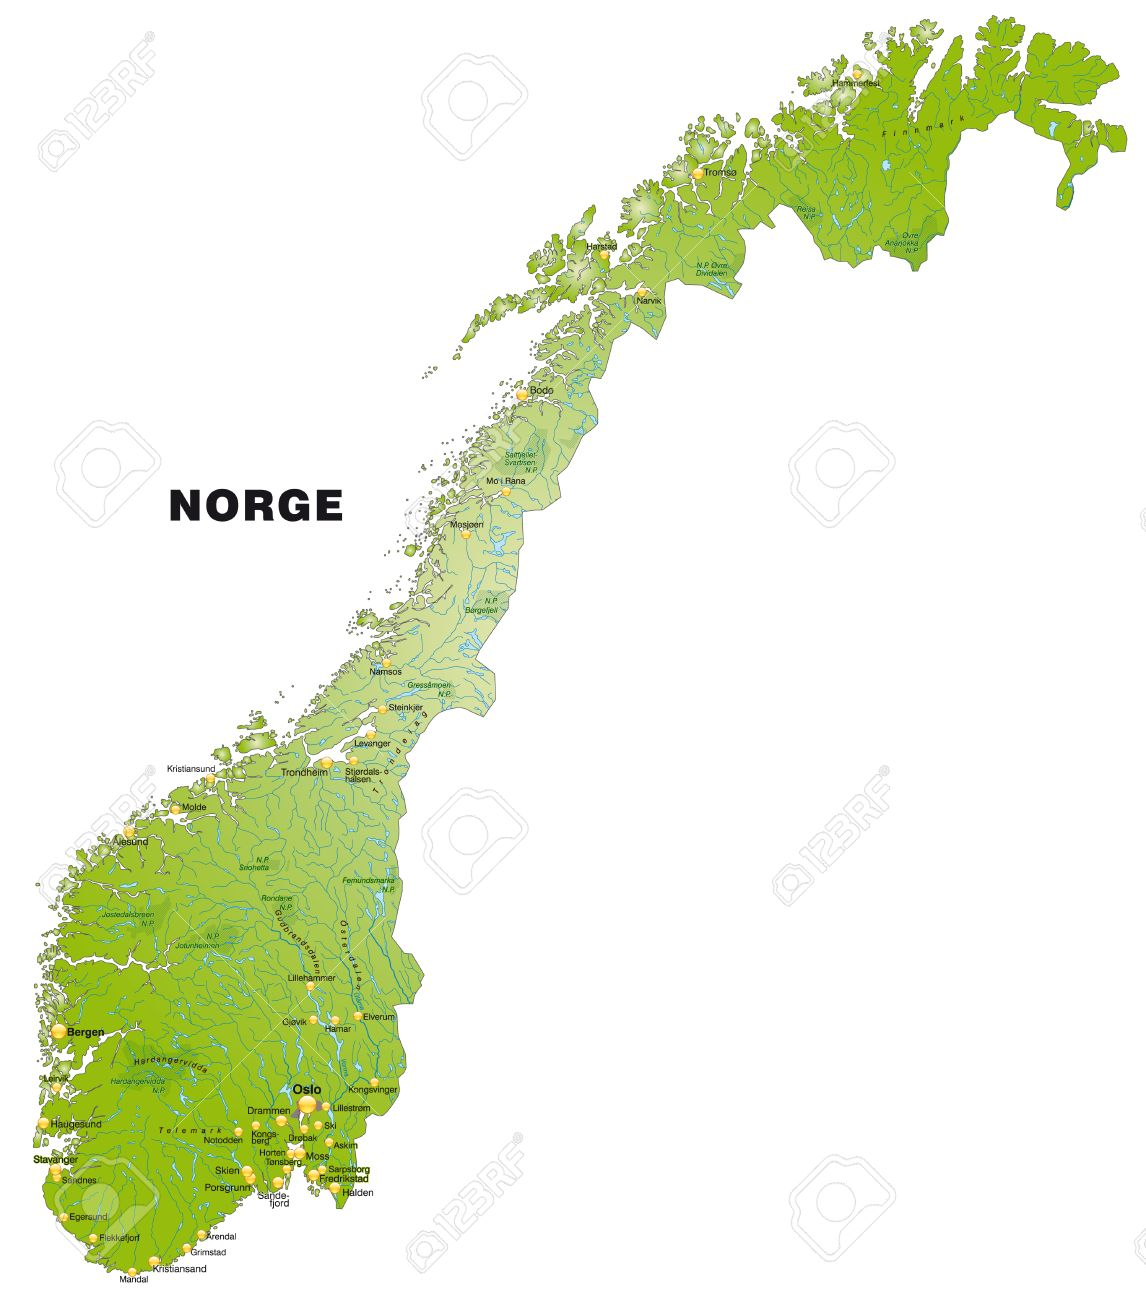 Map Of Norway As An Overview Map In Green Royalty Free Cliparts